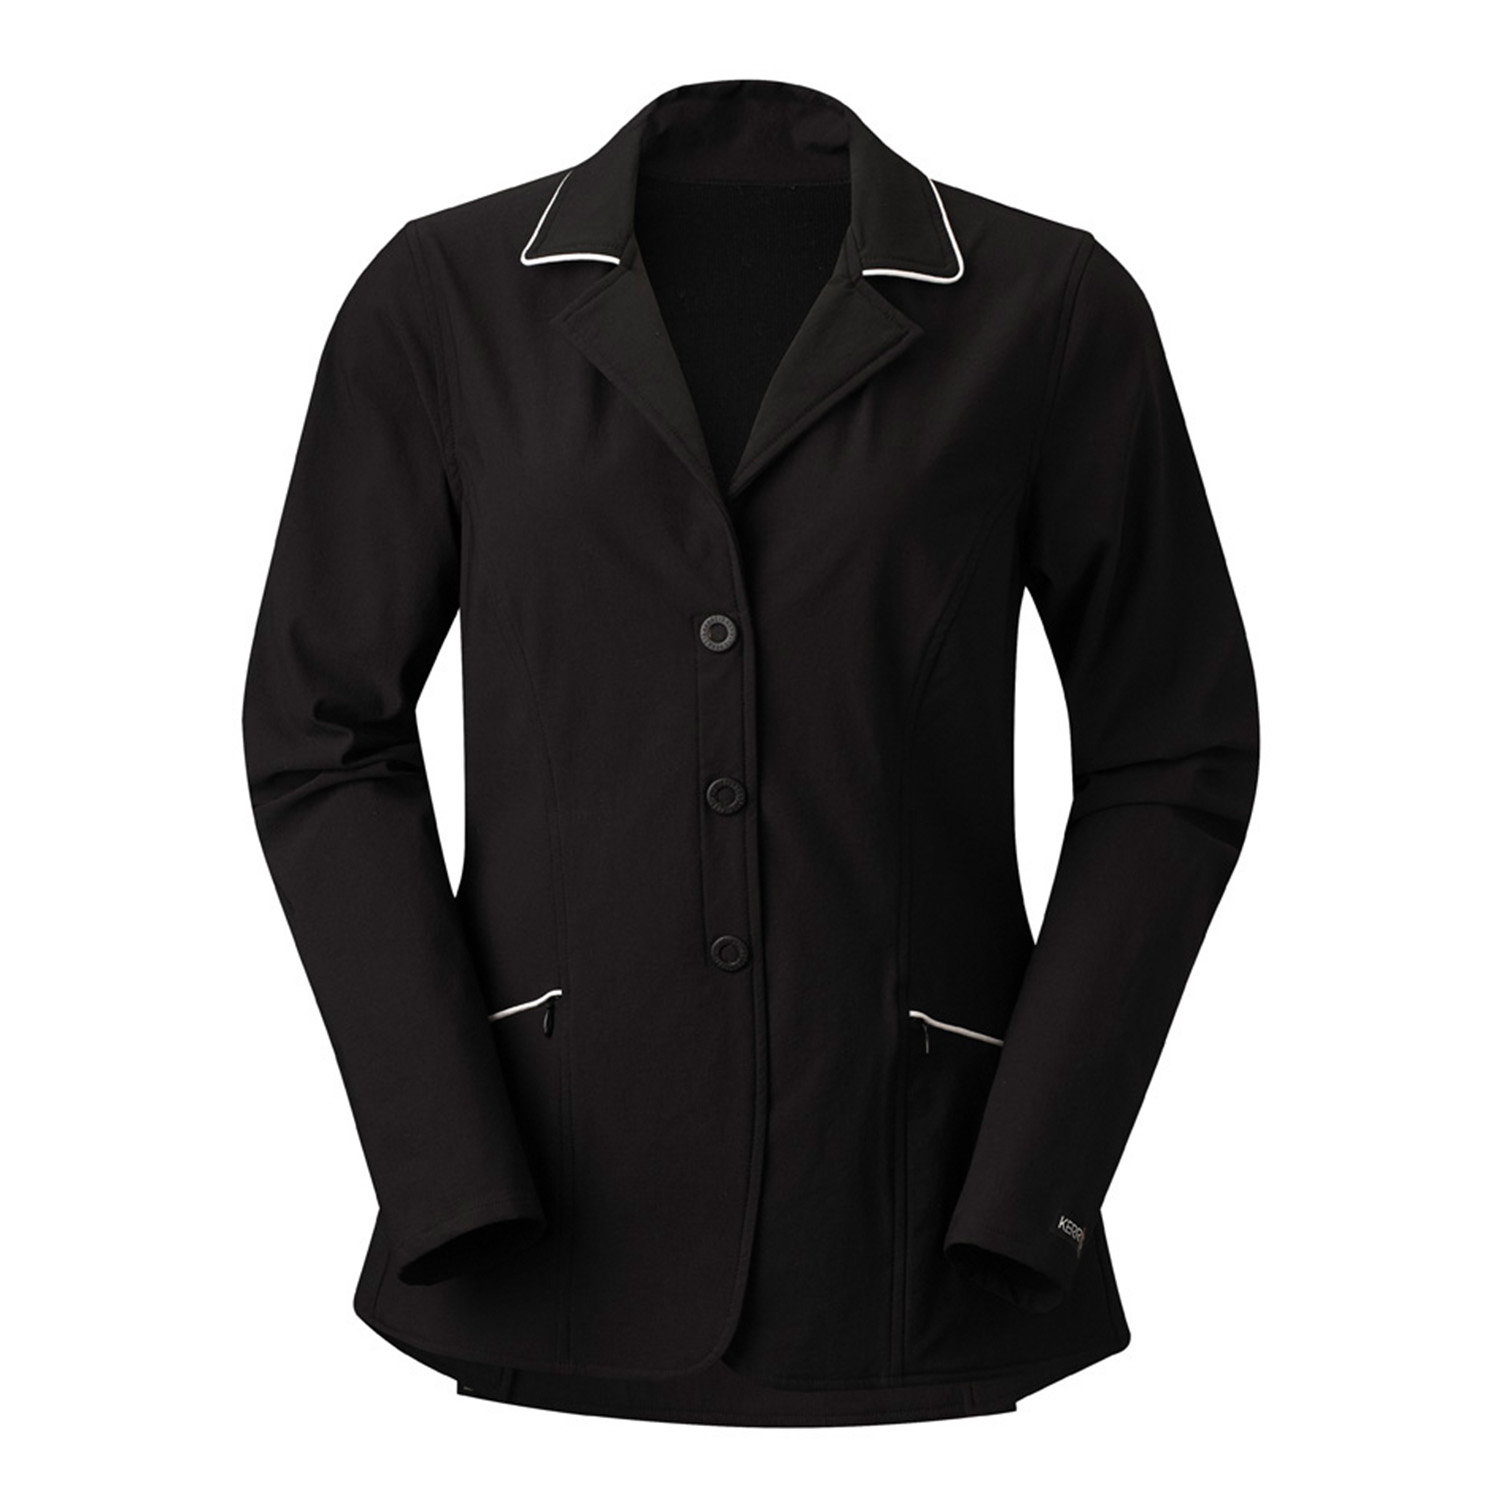 Equestrian Show Coats-Dressage Coats-Competition Jackets